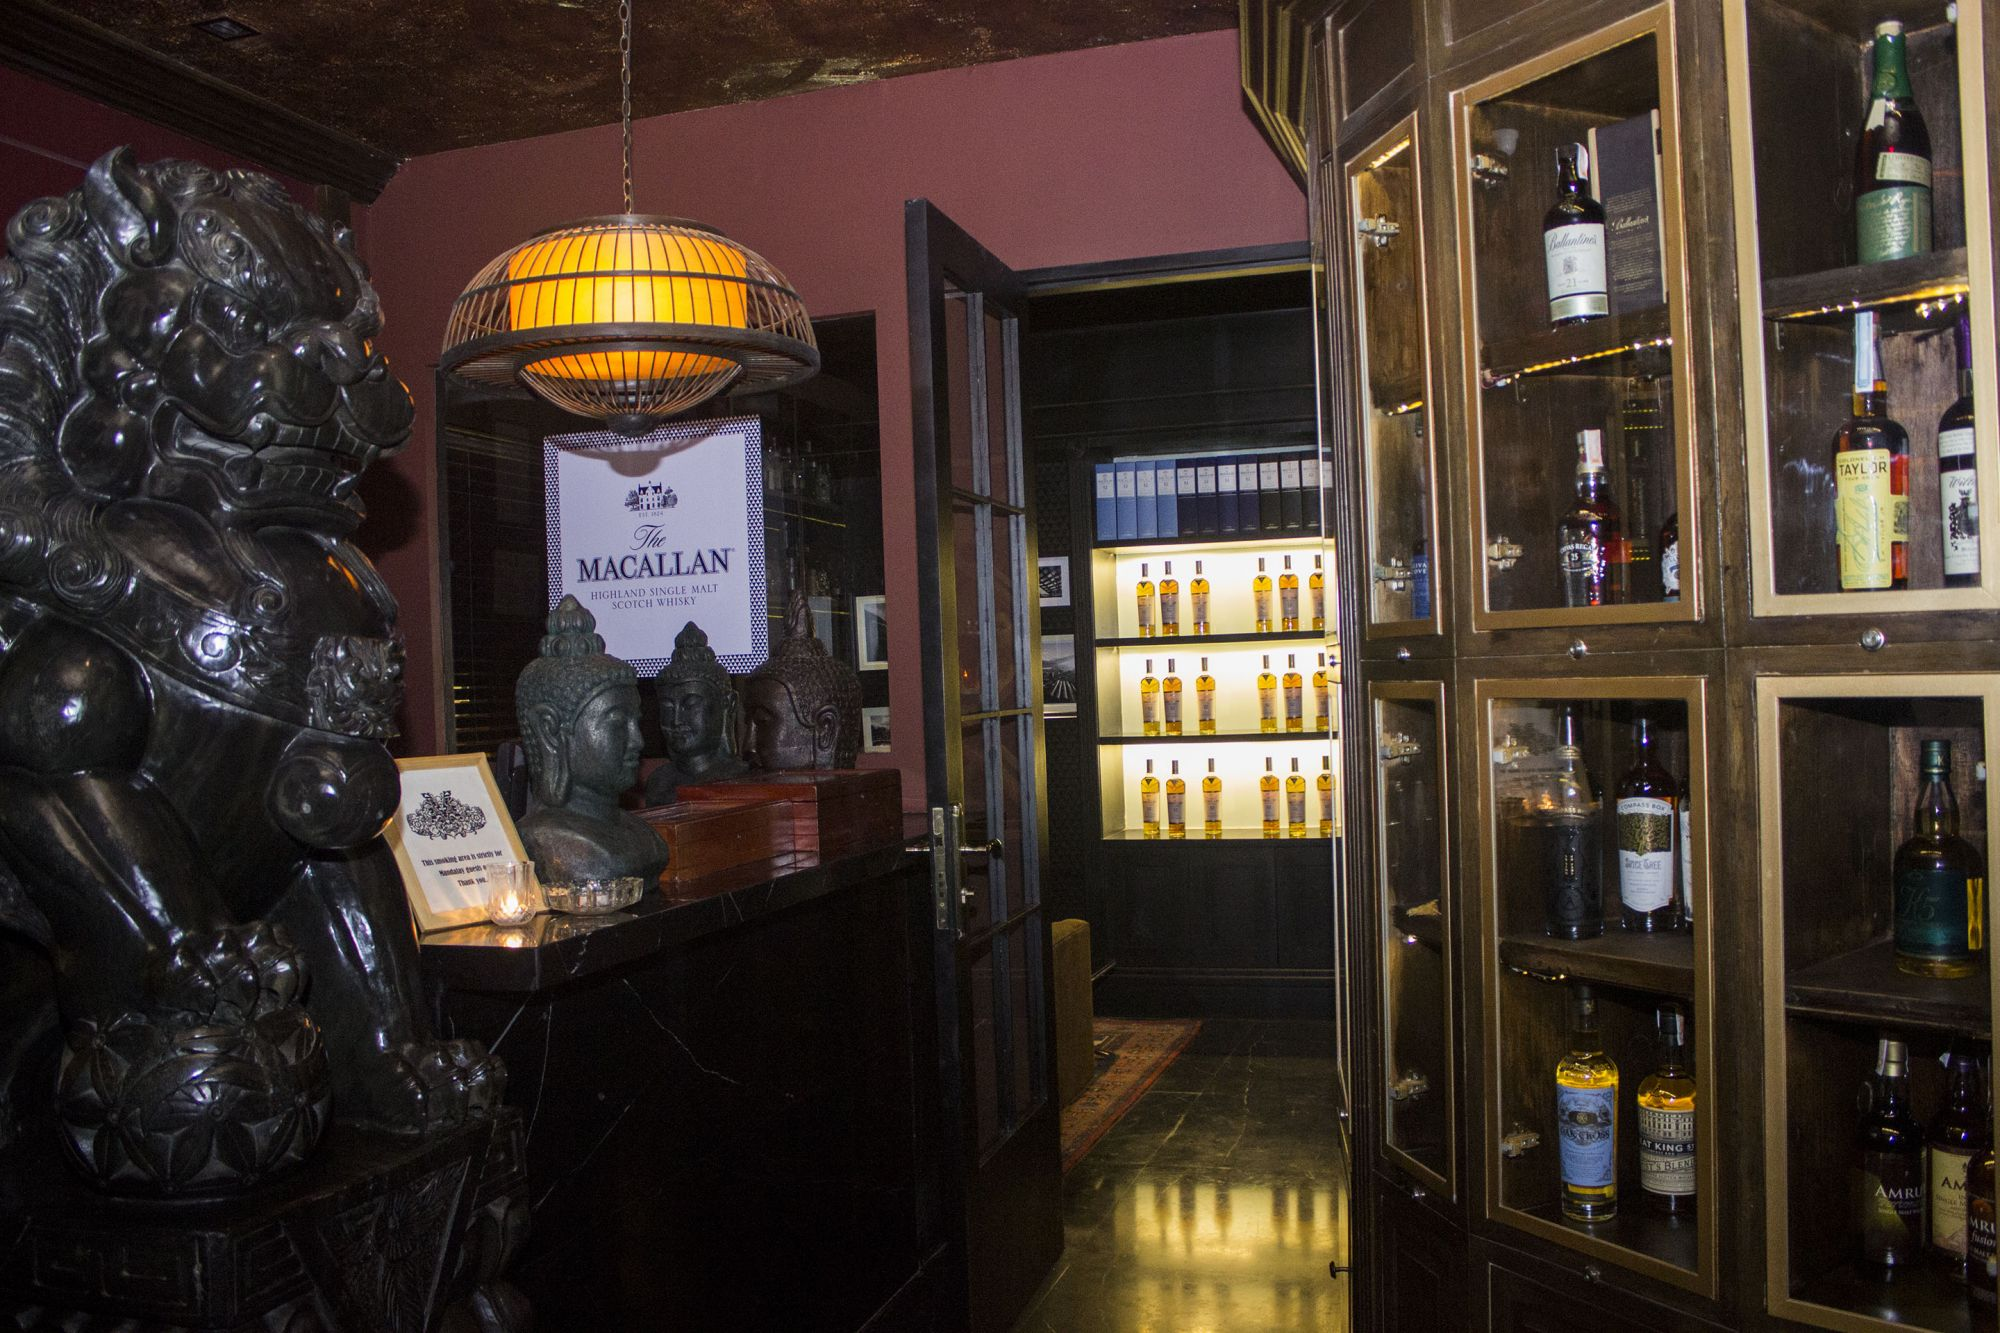 The Macallan Lounge: A Whisky Lover's Haven photo